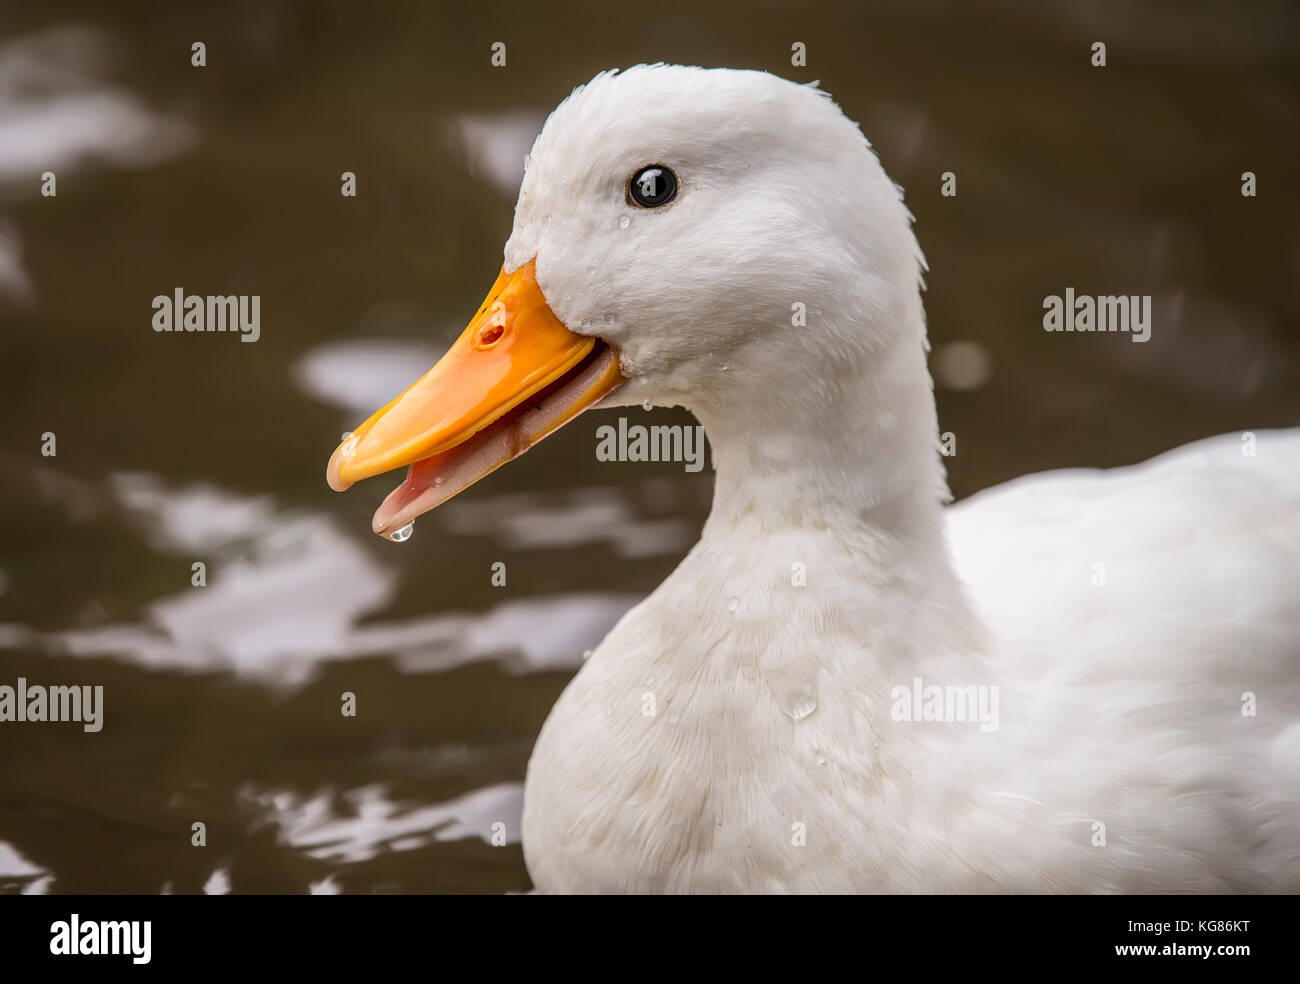 Pekin duck, in a river, close up - Stock Image